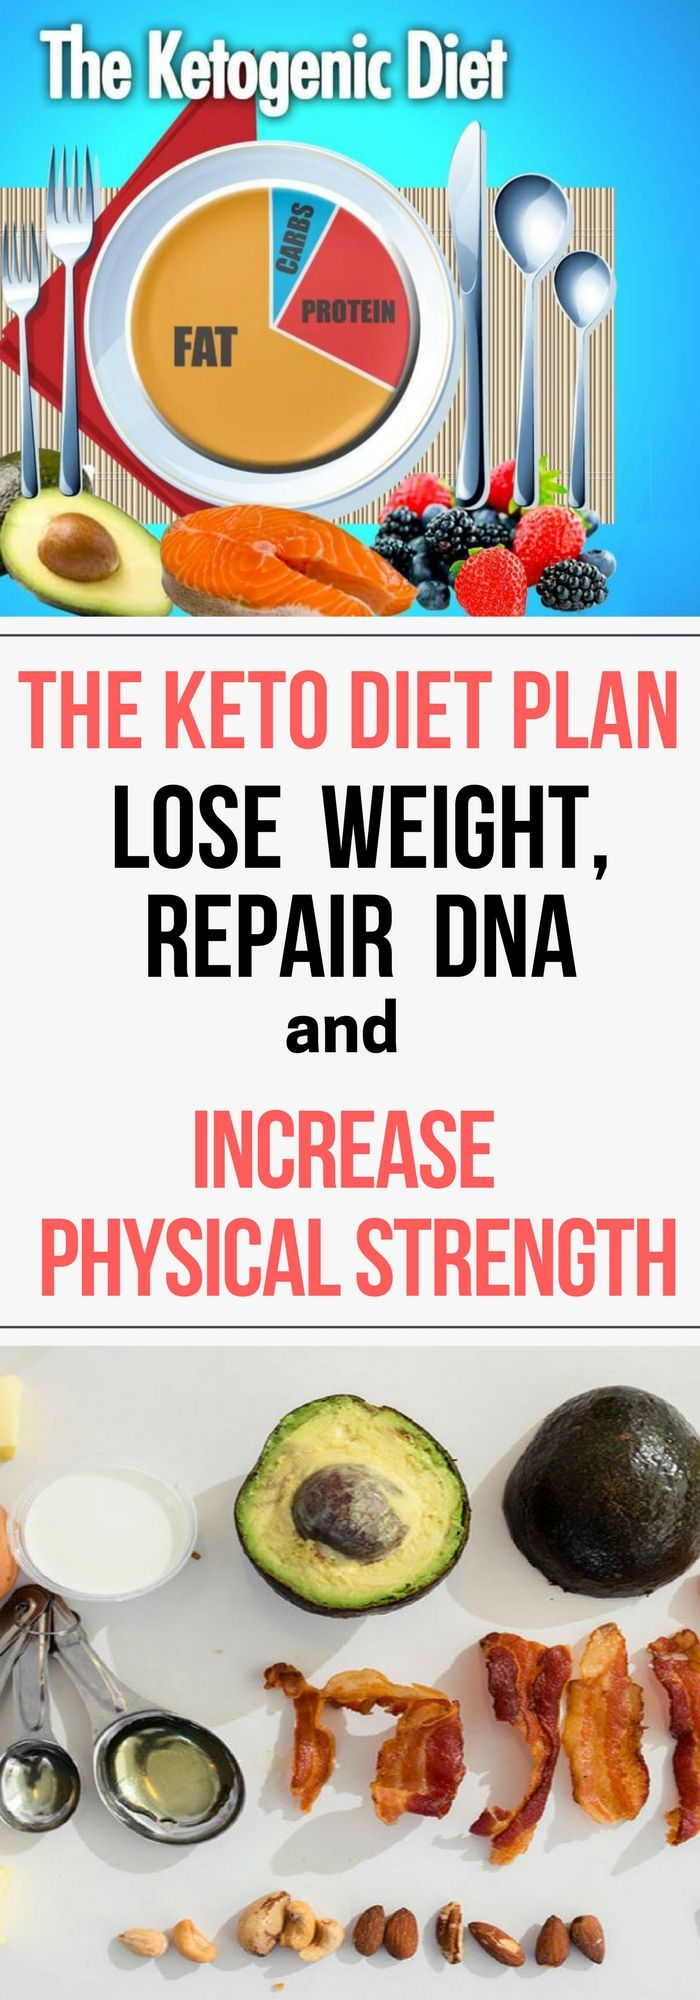 Ketogenic Diets Do Not Compromise Performance